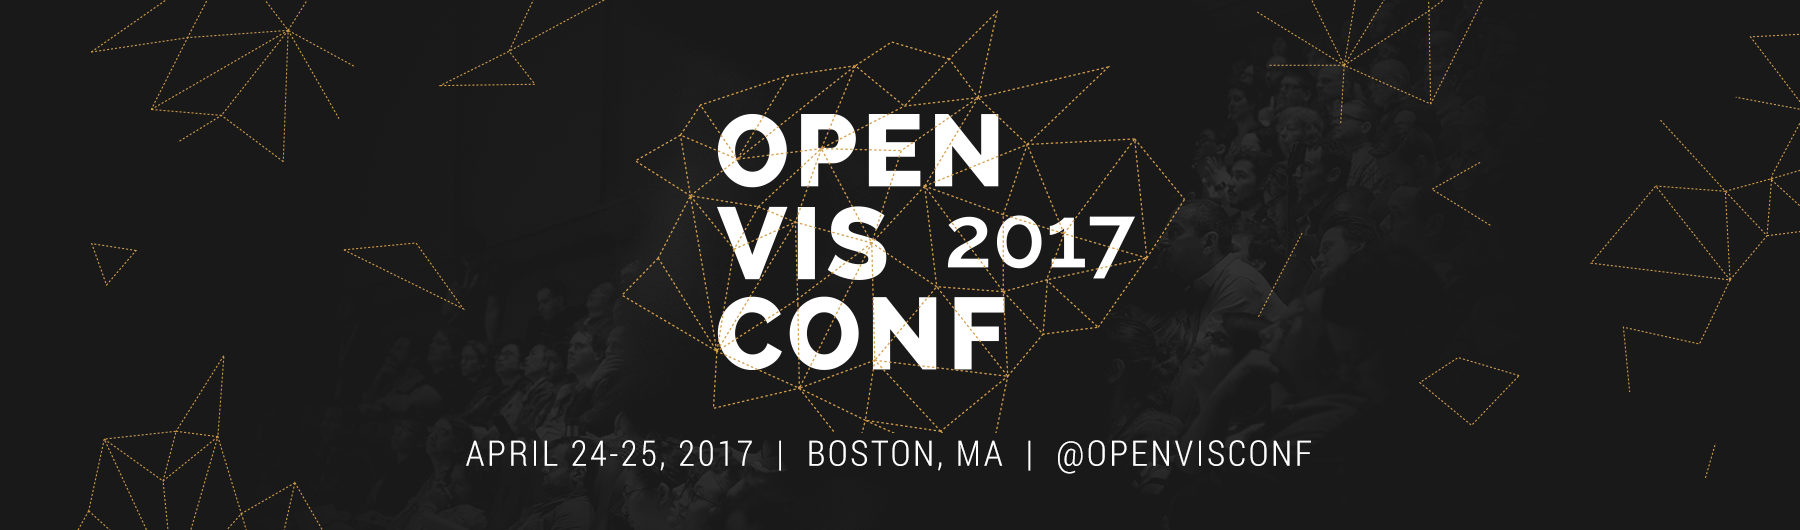 OpenVis Conference 2017